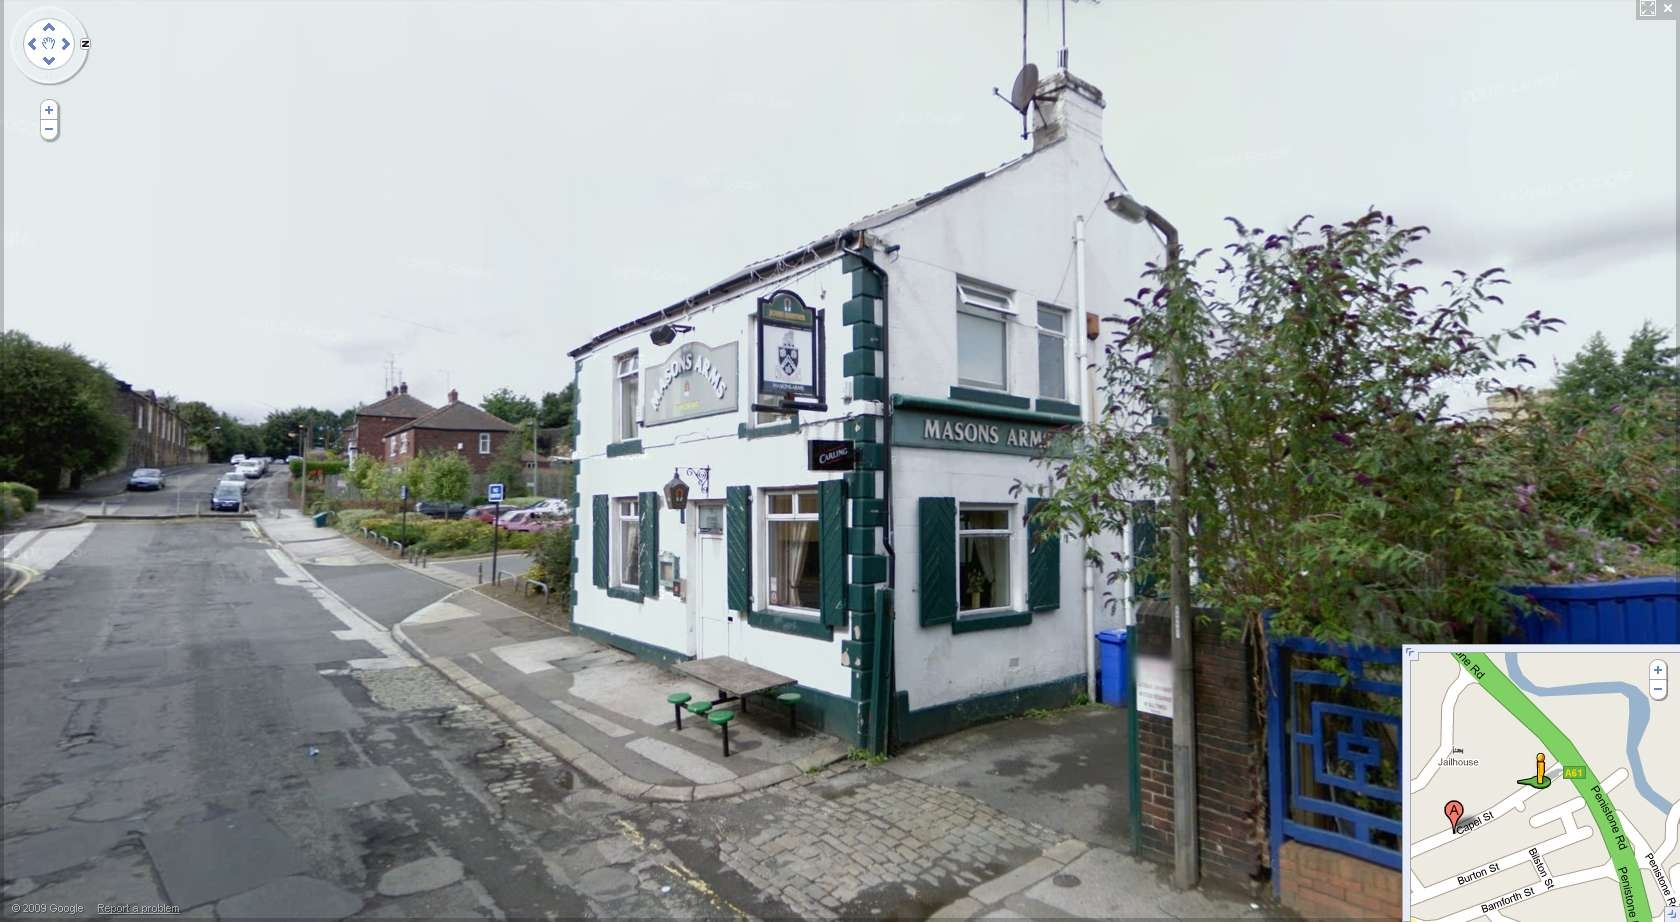 Are the following pubs still open sheffield pubs wmc for The sheffield